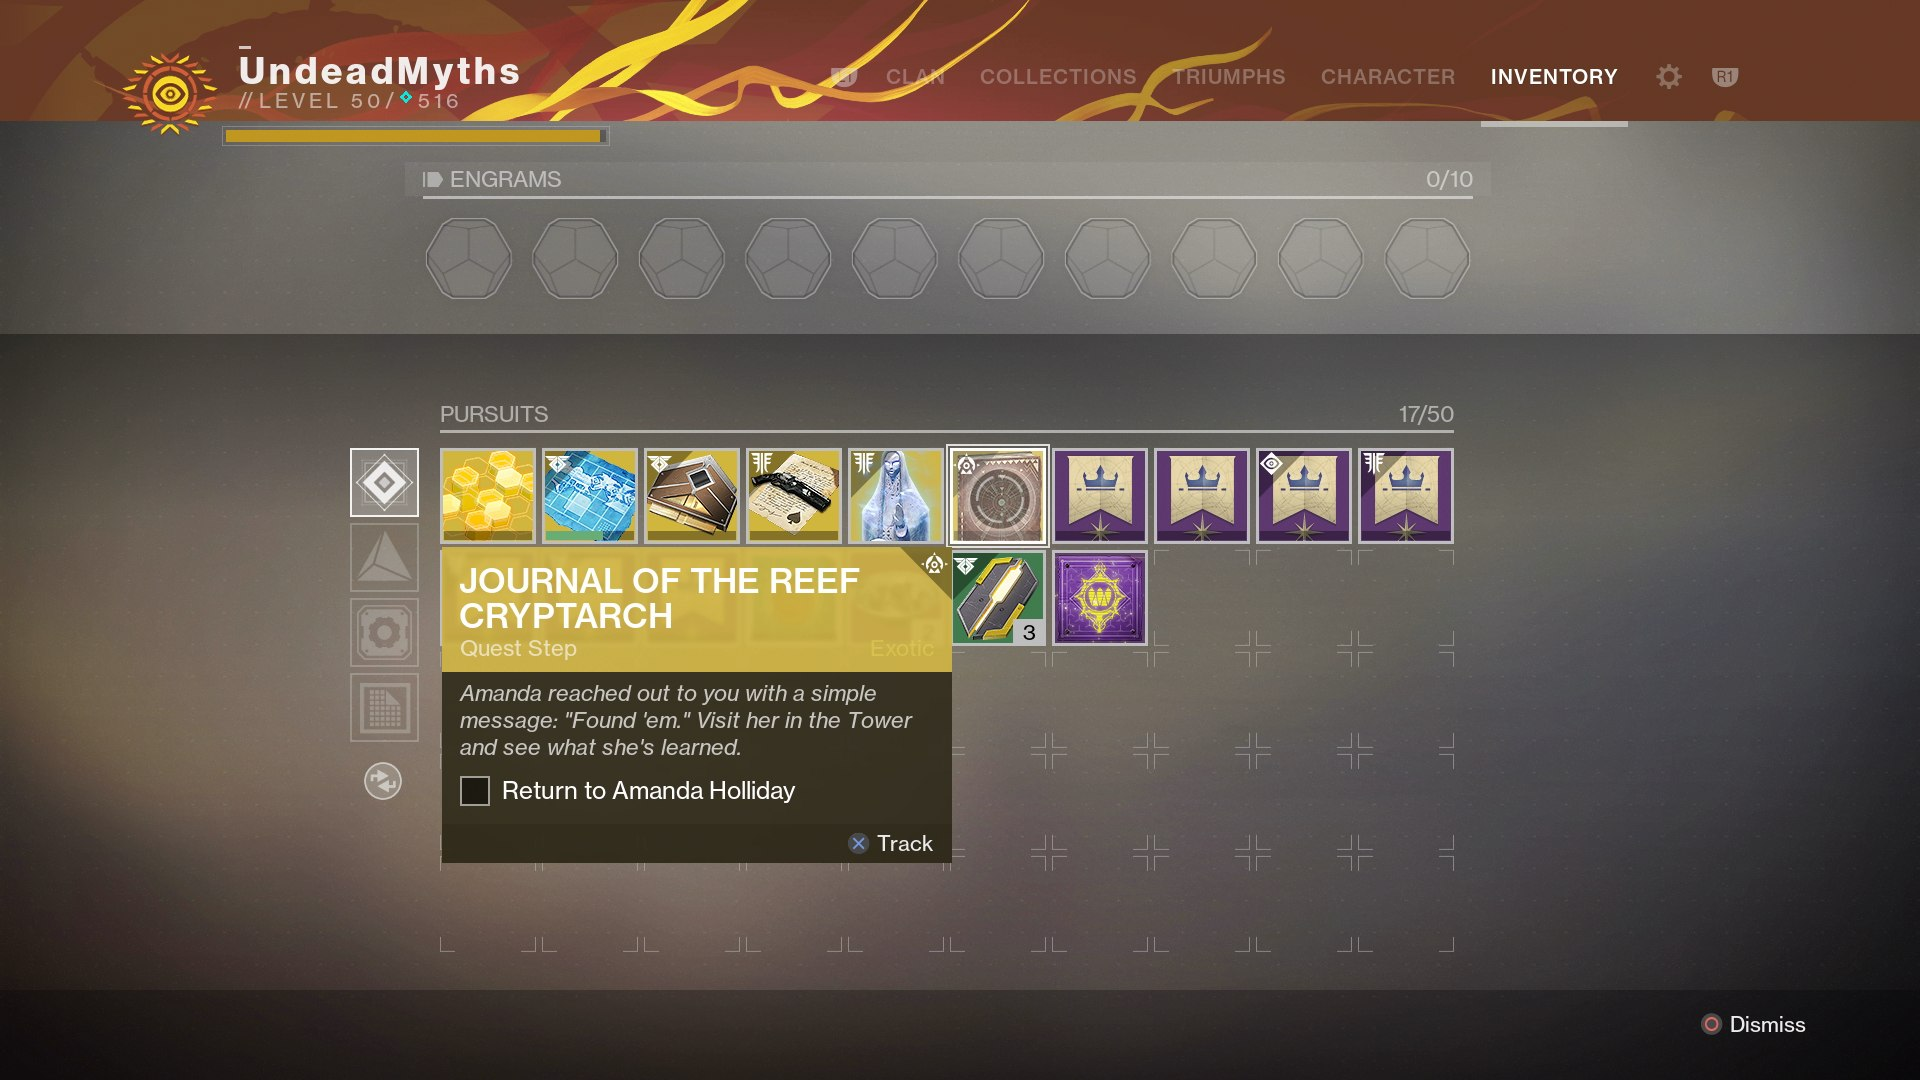 Destiny 2 Lost Cryptarch Guide - How to Get the Thunderlord Exotic